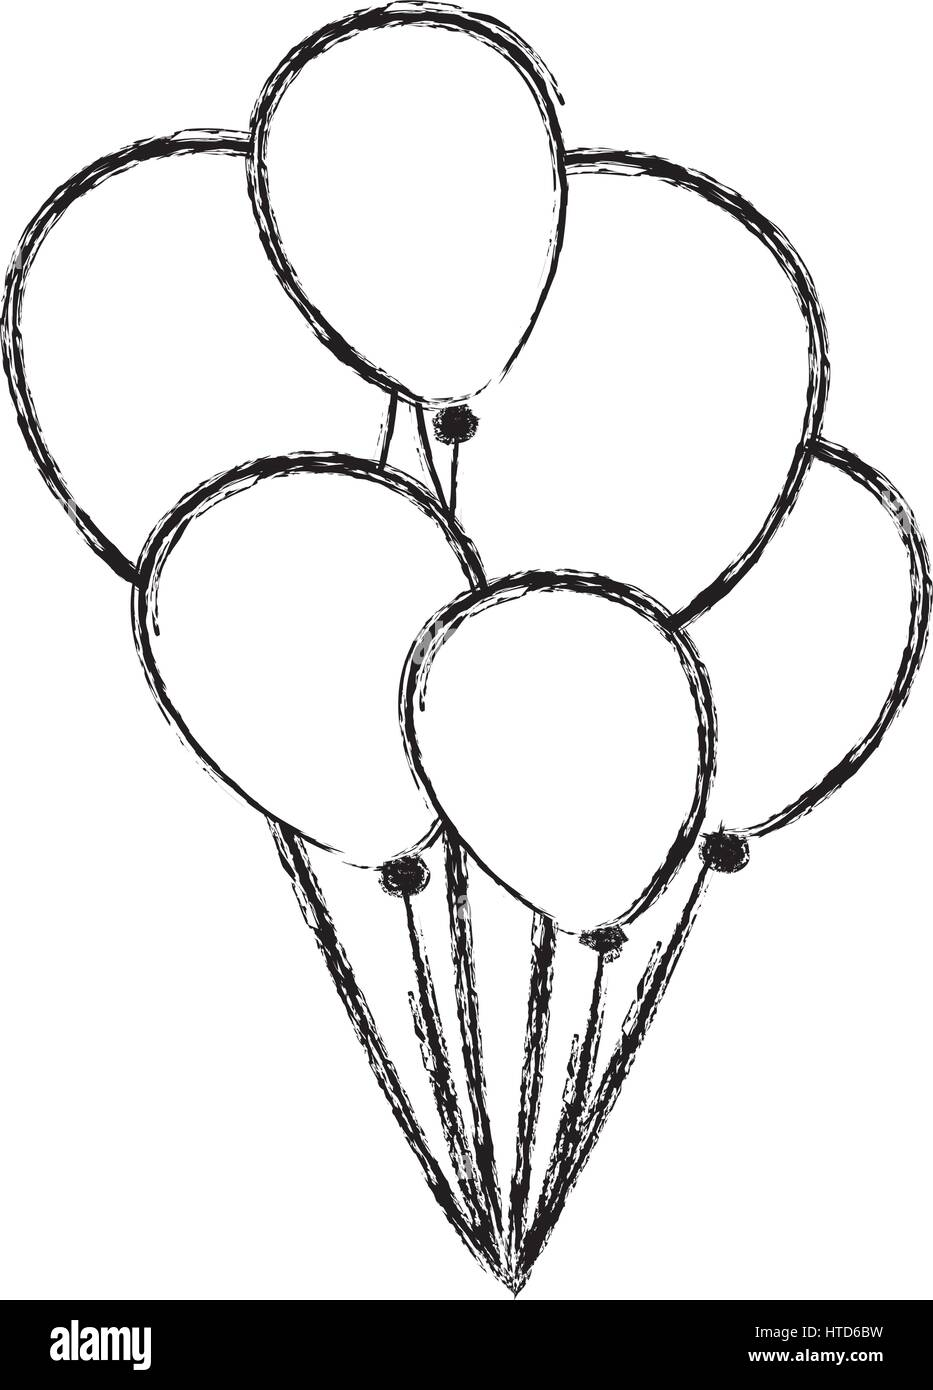 blurred silhouette sketch set flying balloons decorative icon